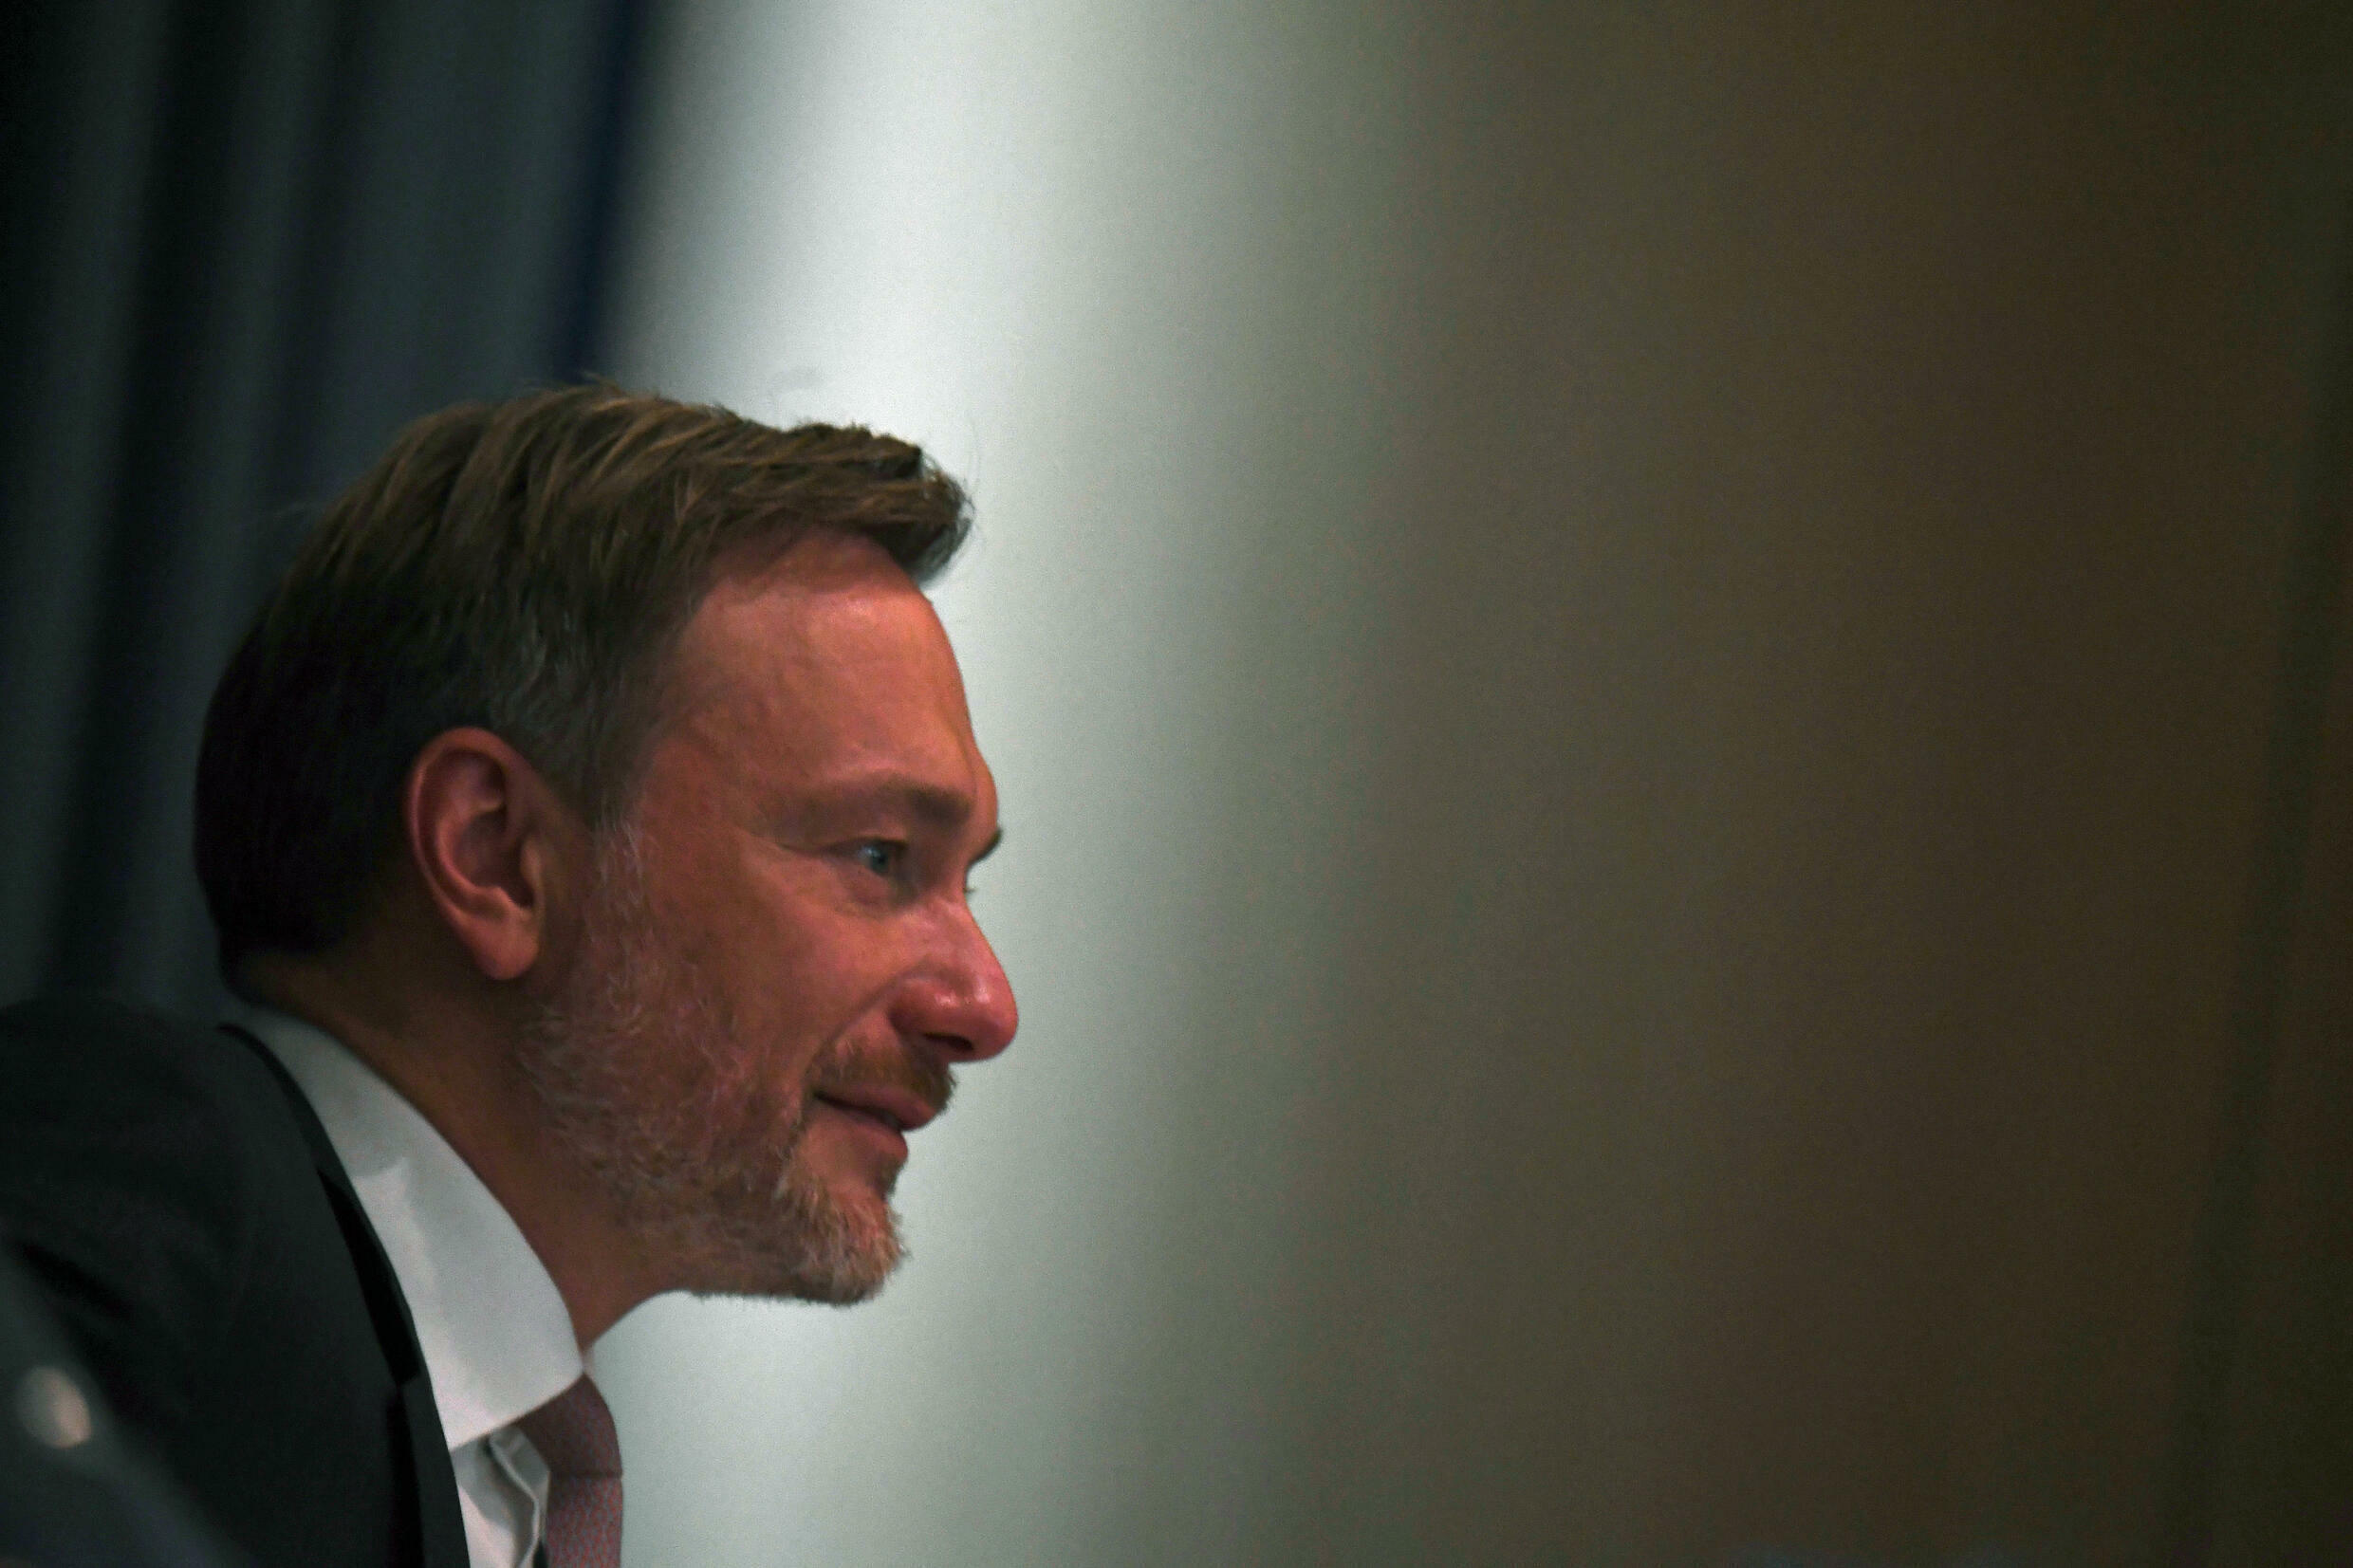 Free Democrat leader Christian Lindner appears cast in the role of kingmaker with him harbouring hopes of becoming finance minister in a coalition government